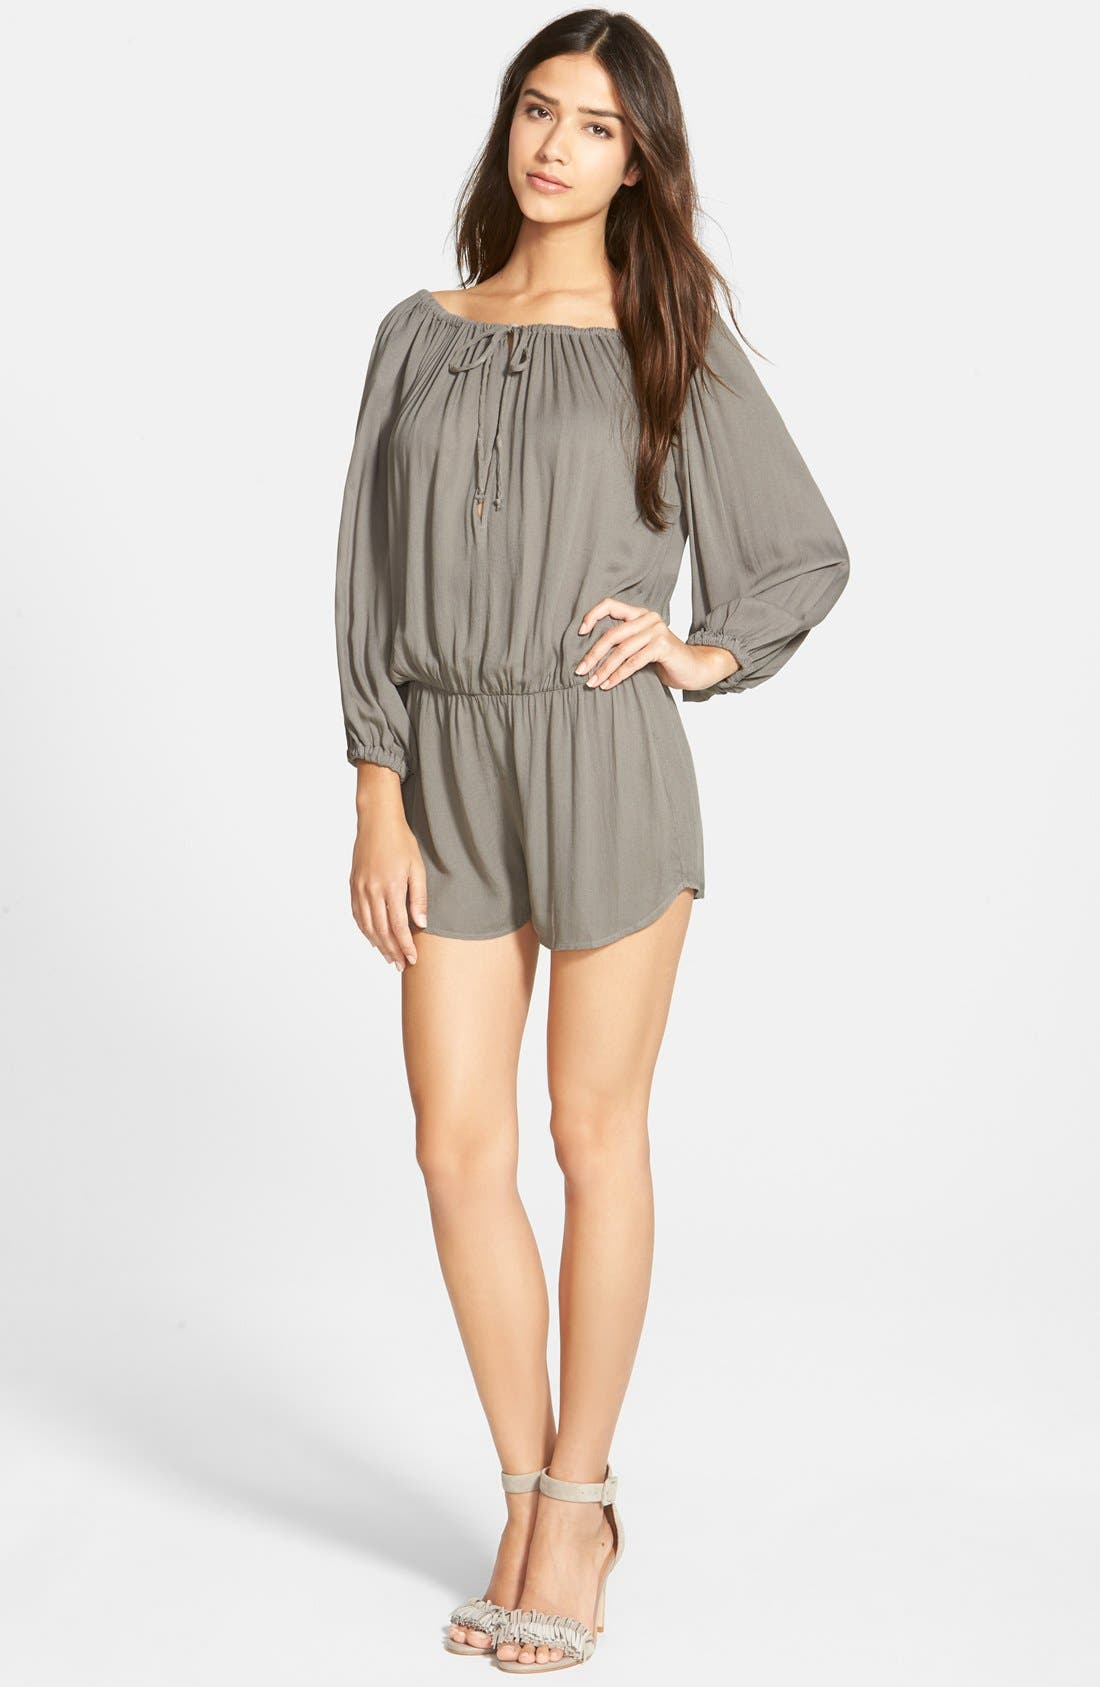 Main Image - Young, Fabulous & Broke 'Bess' Off the Shoulder Romper